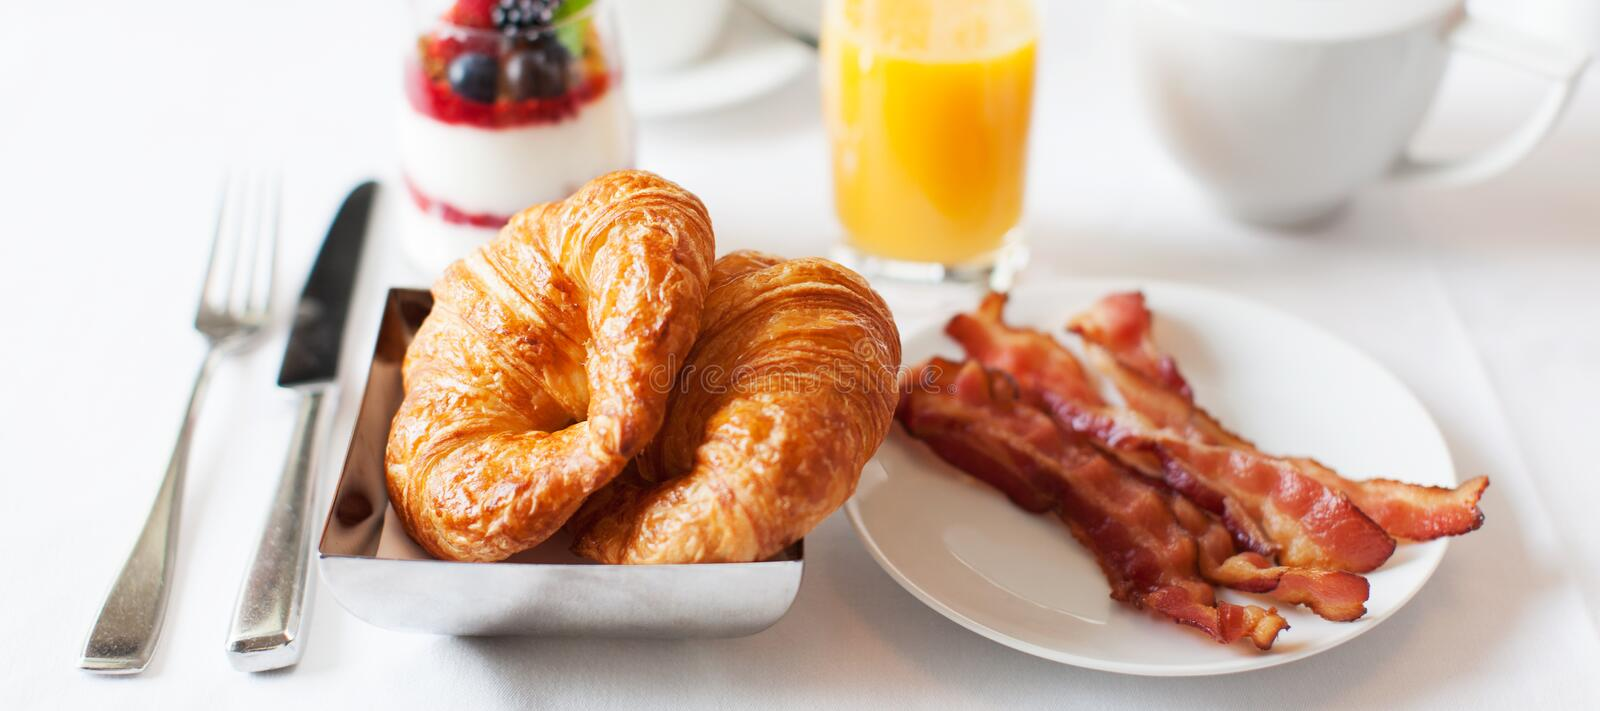 Panorama of delicious breakfast royalty free stock photography